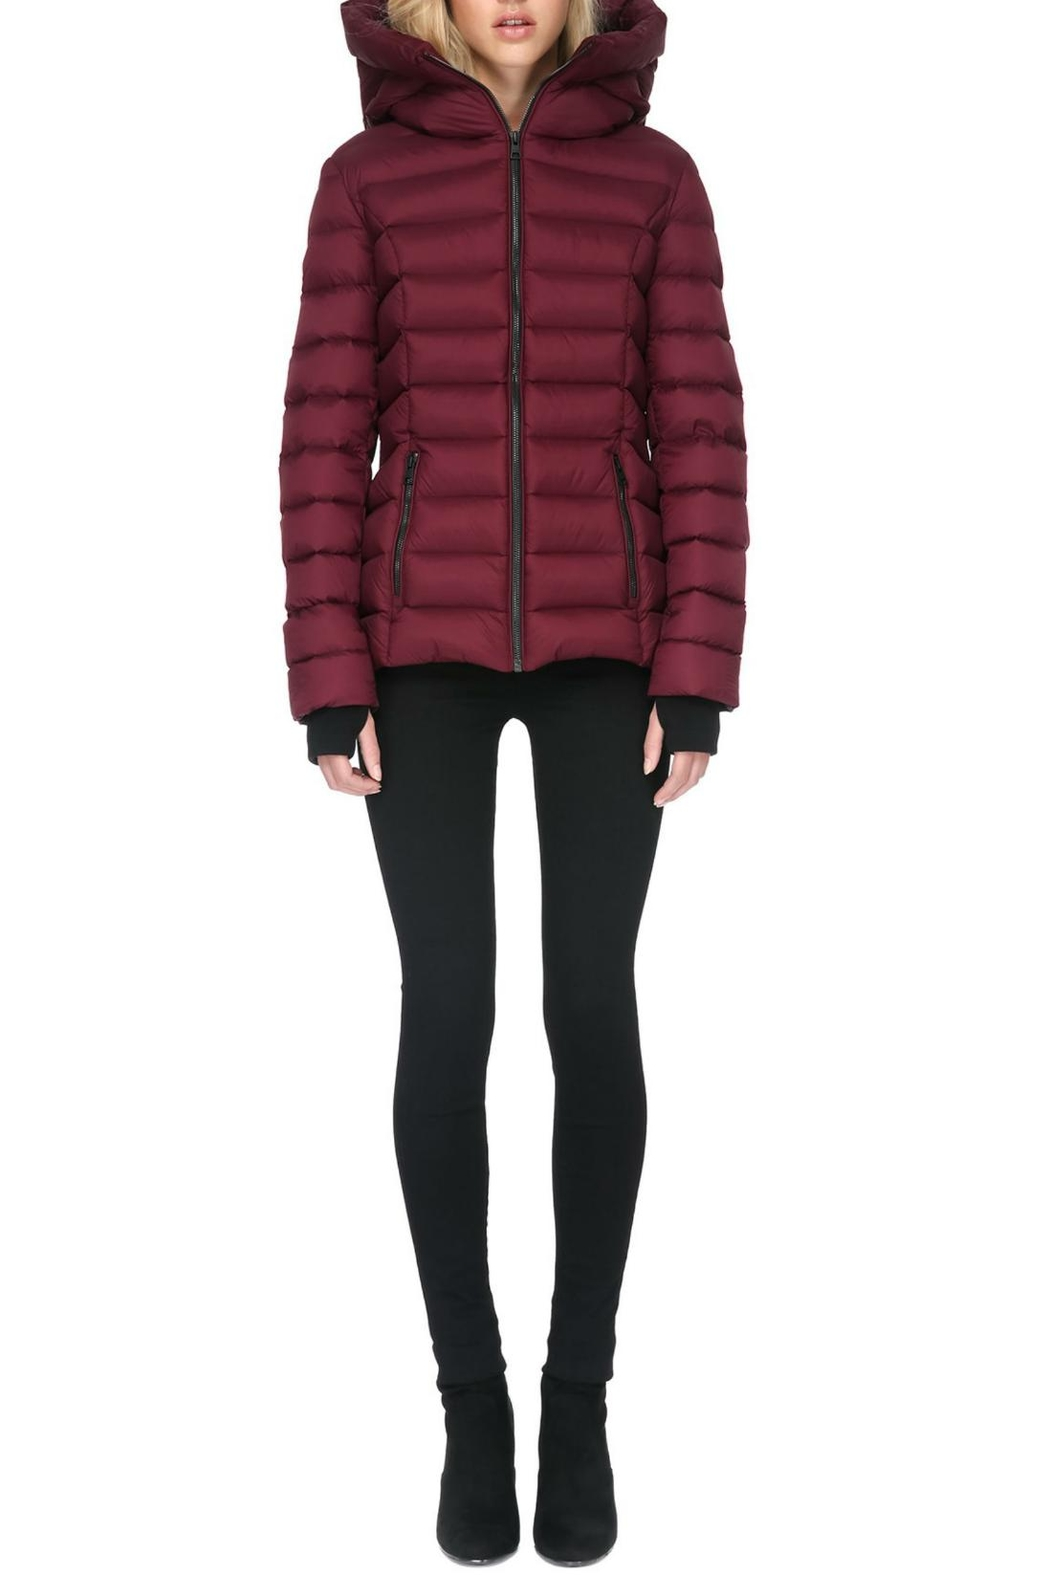 Soia & Kyo Charlise Light Down Jacket - Front Cropped Image